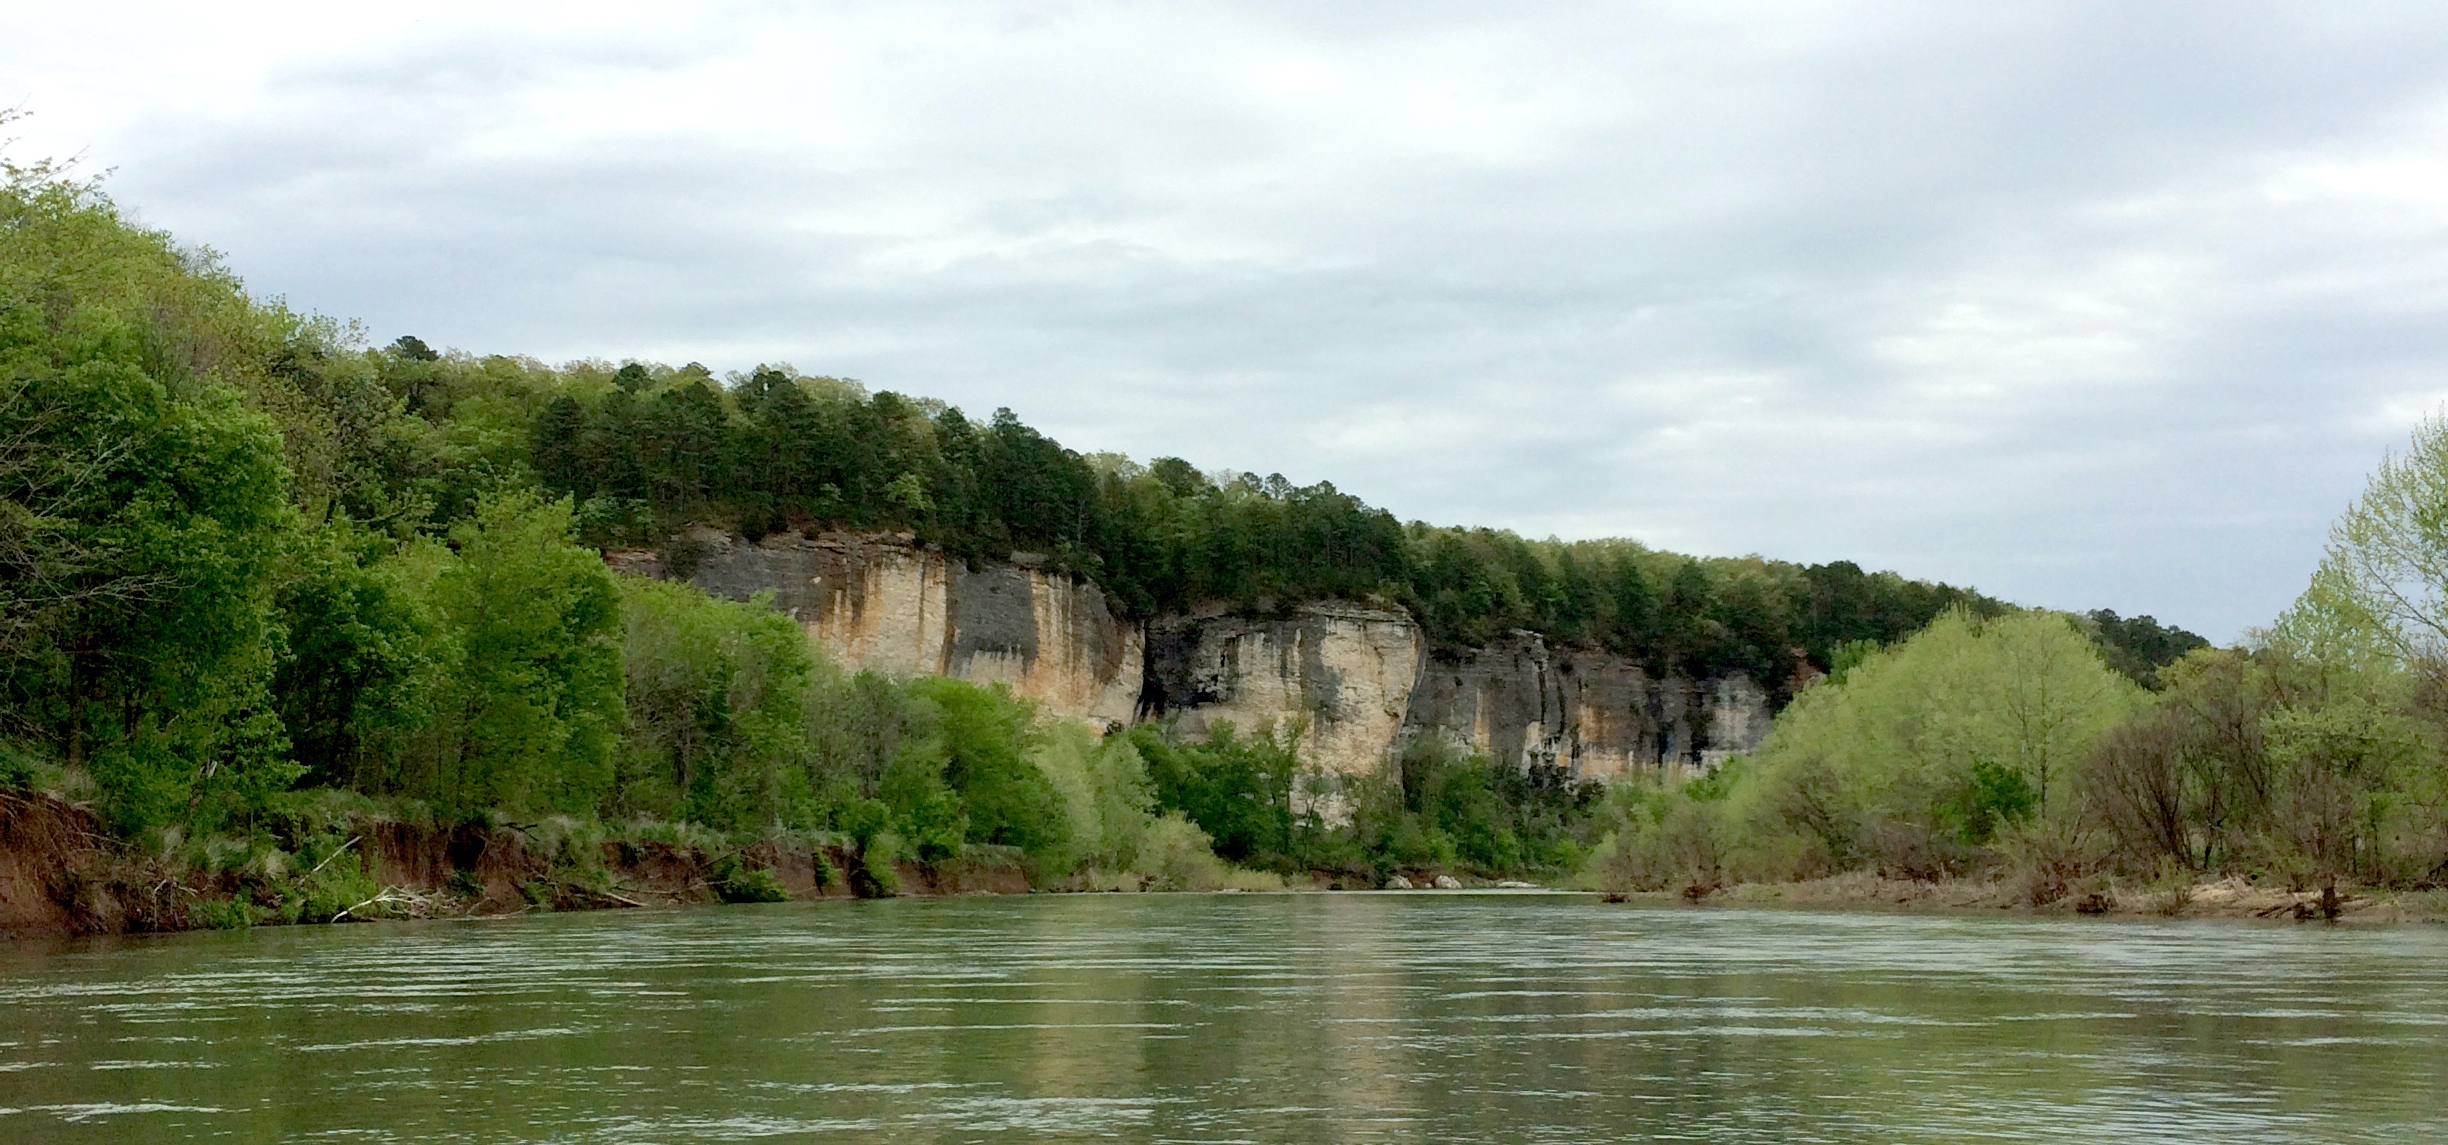 Tall, majestic cliffs and lush green foliage are the hallmarks of the Buffalo National River.